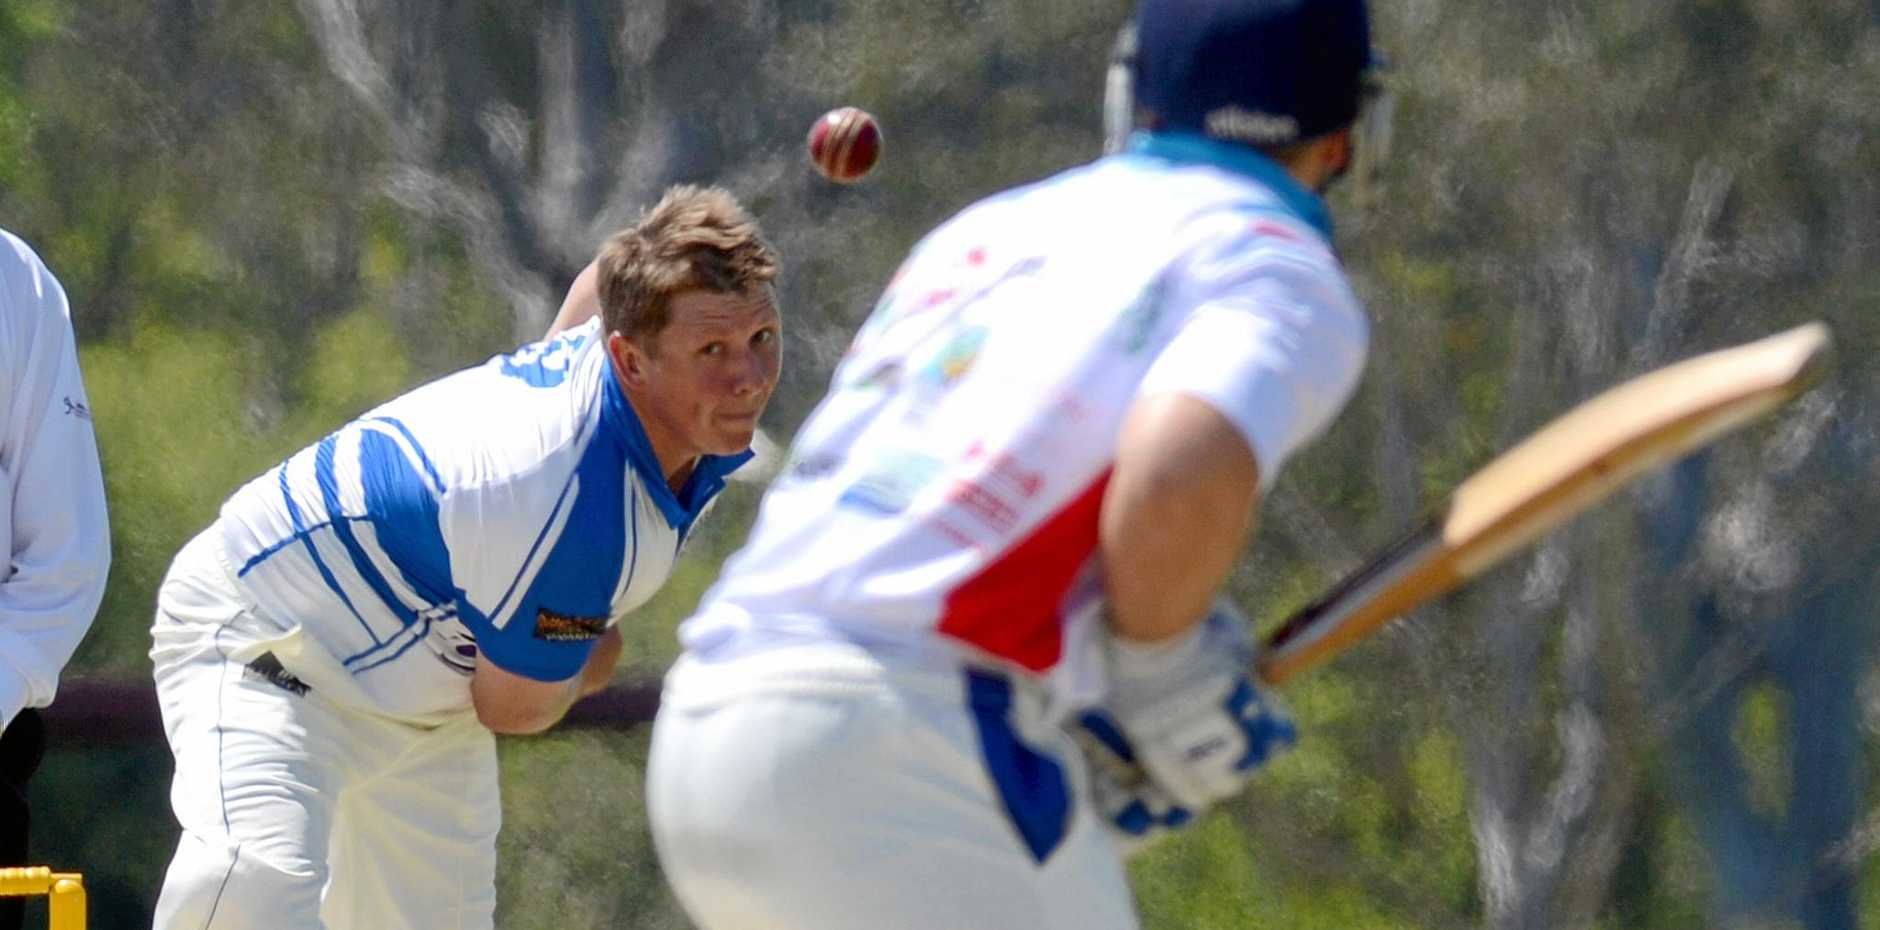 Brothers cricket captain Craig Cumming is ready to lead his side in the fast-approaching new season.